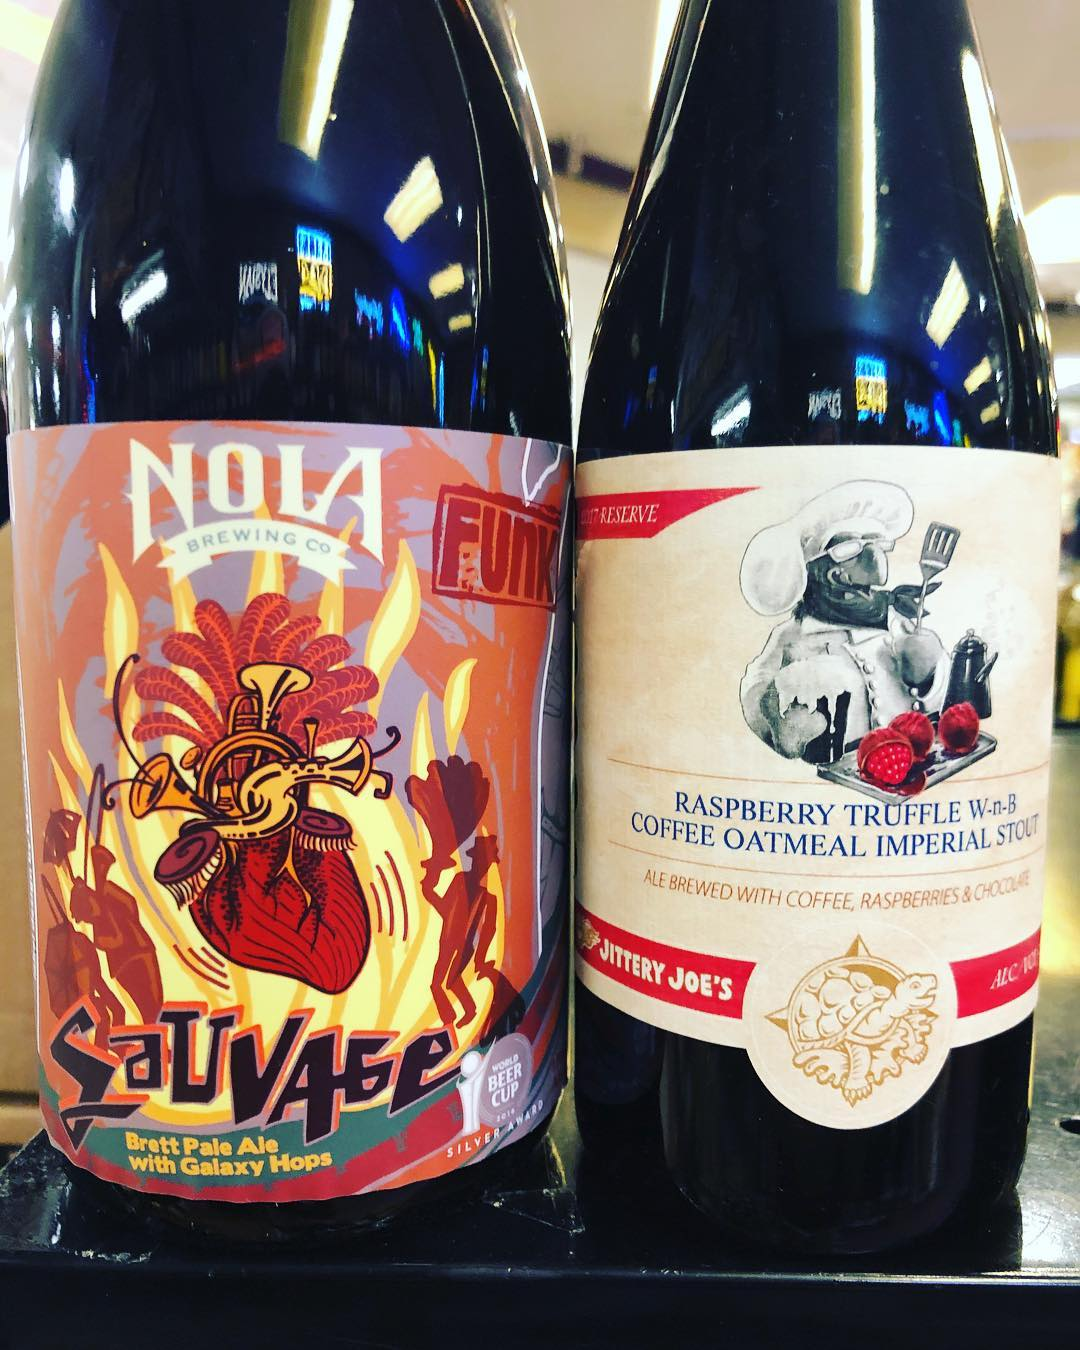 @terrapinbeerco Raspberry Truffle Wake-n-Bake and @nolabrewing Sauvage Batch 4 are now in stock at our…